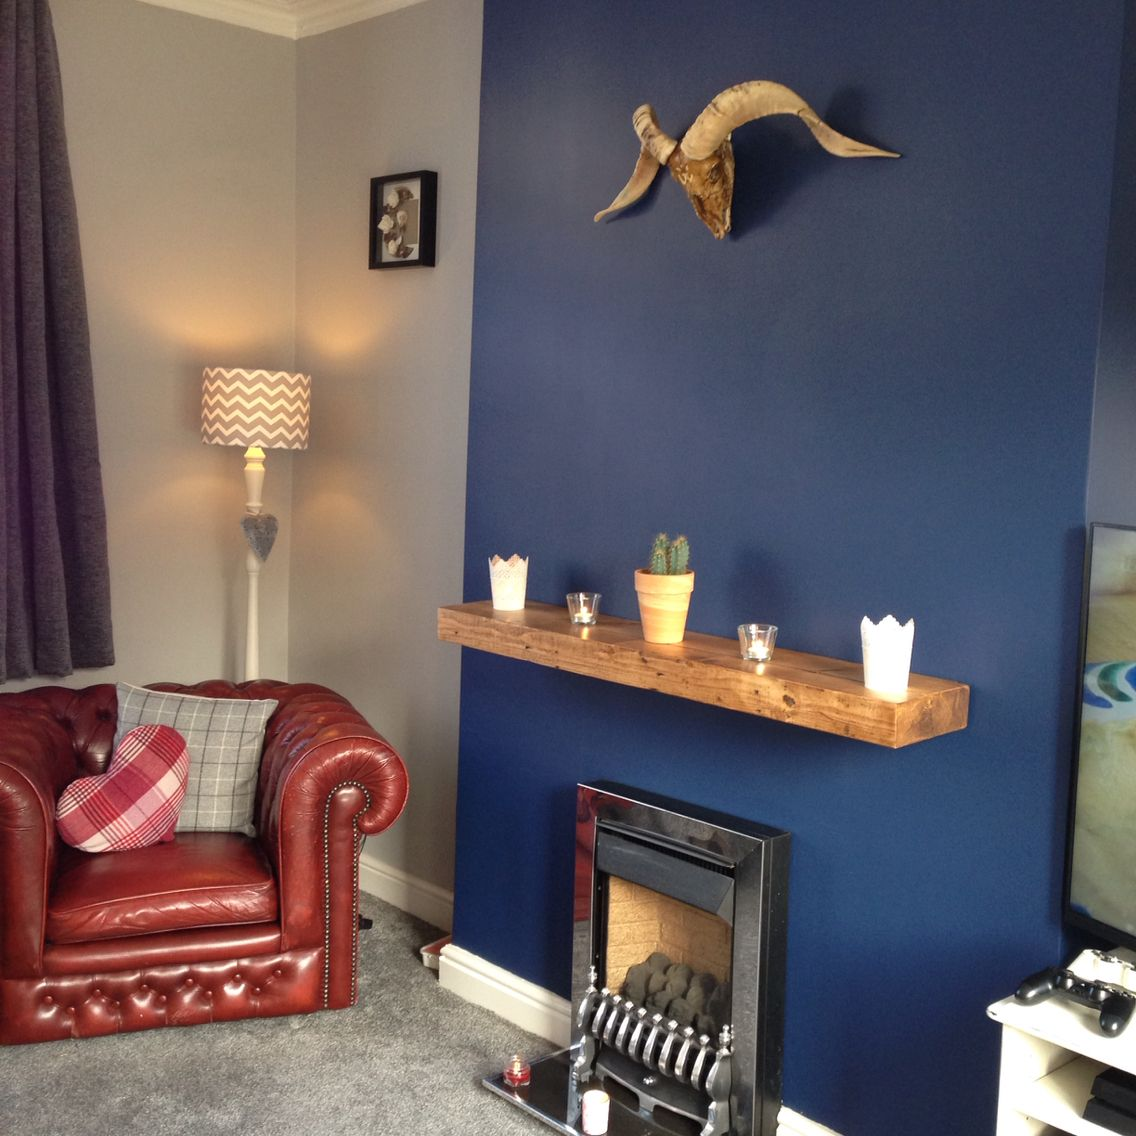 Decorating Ideas Dulux: Sapphire Salute / Chic Shadow / Feature Wall / Navy And